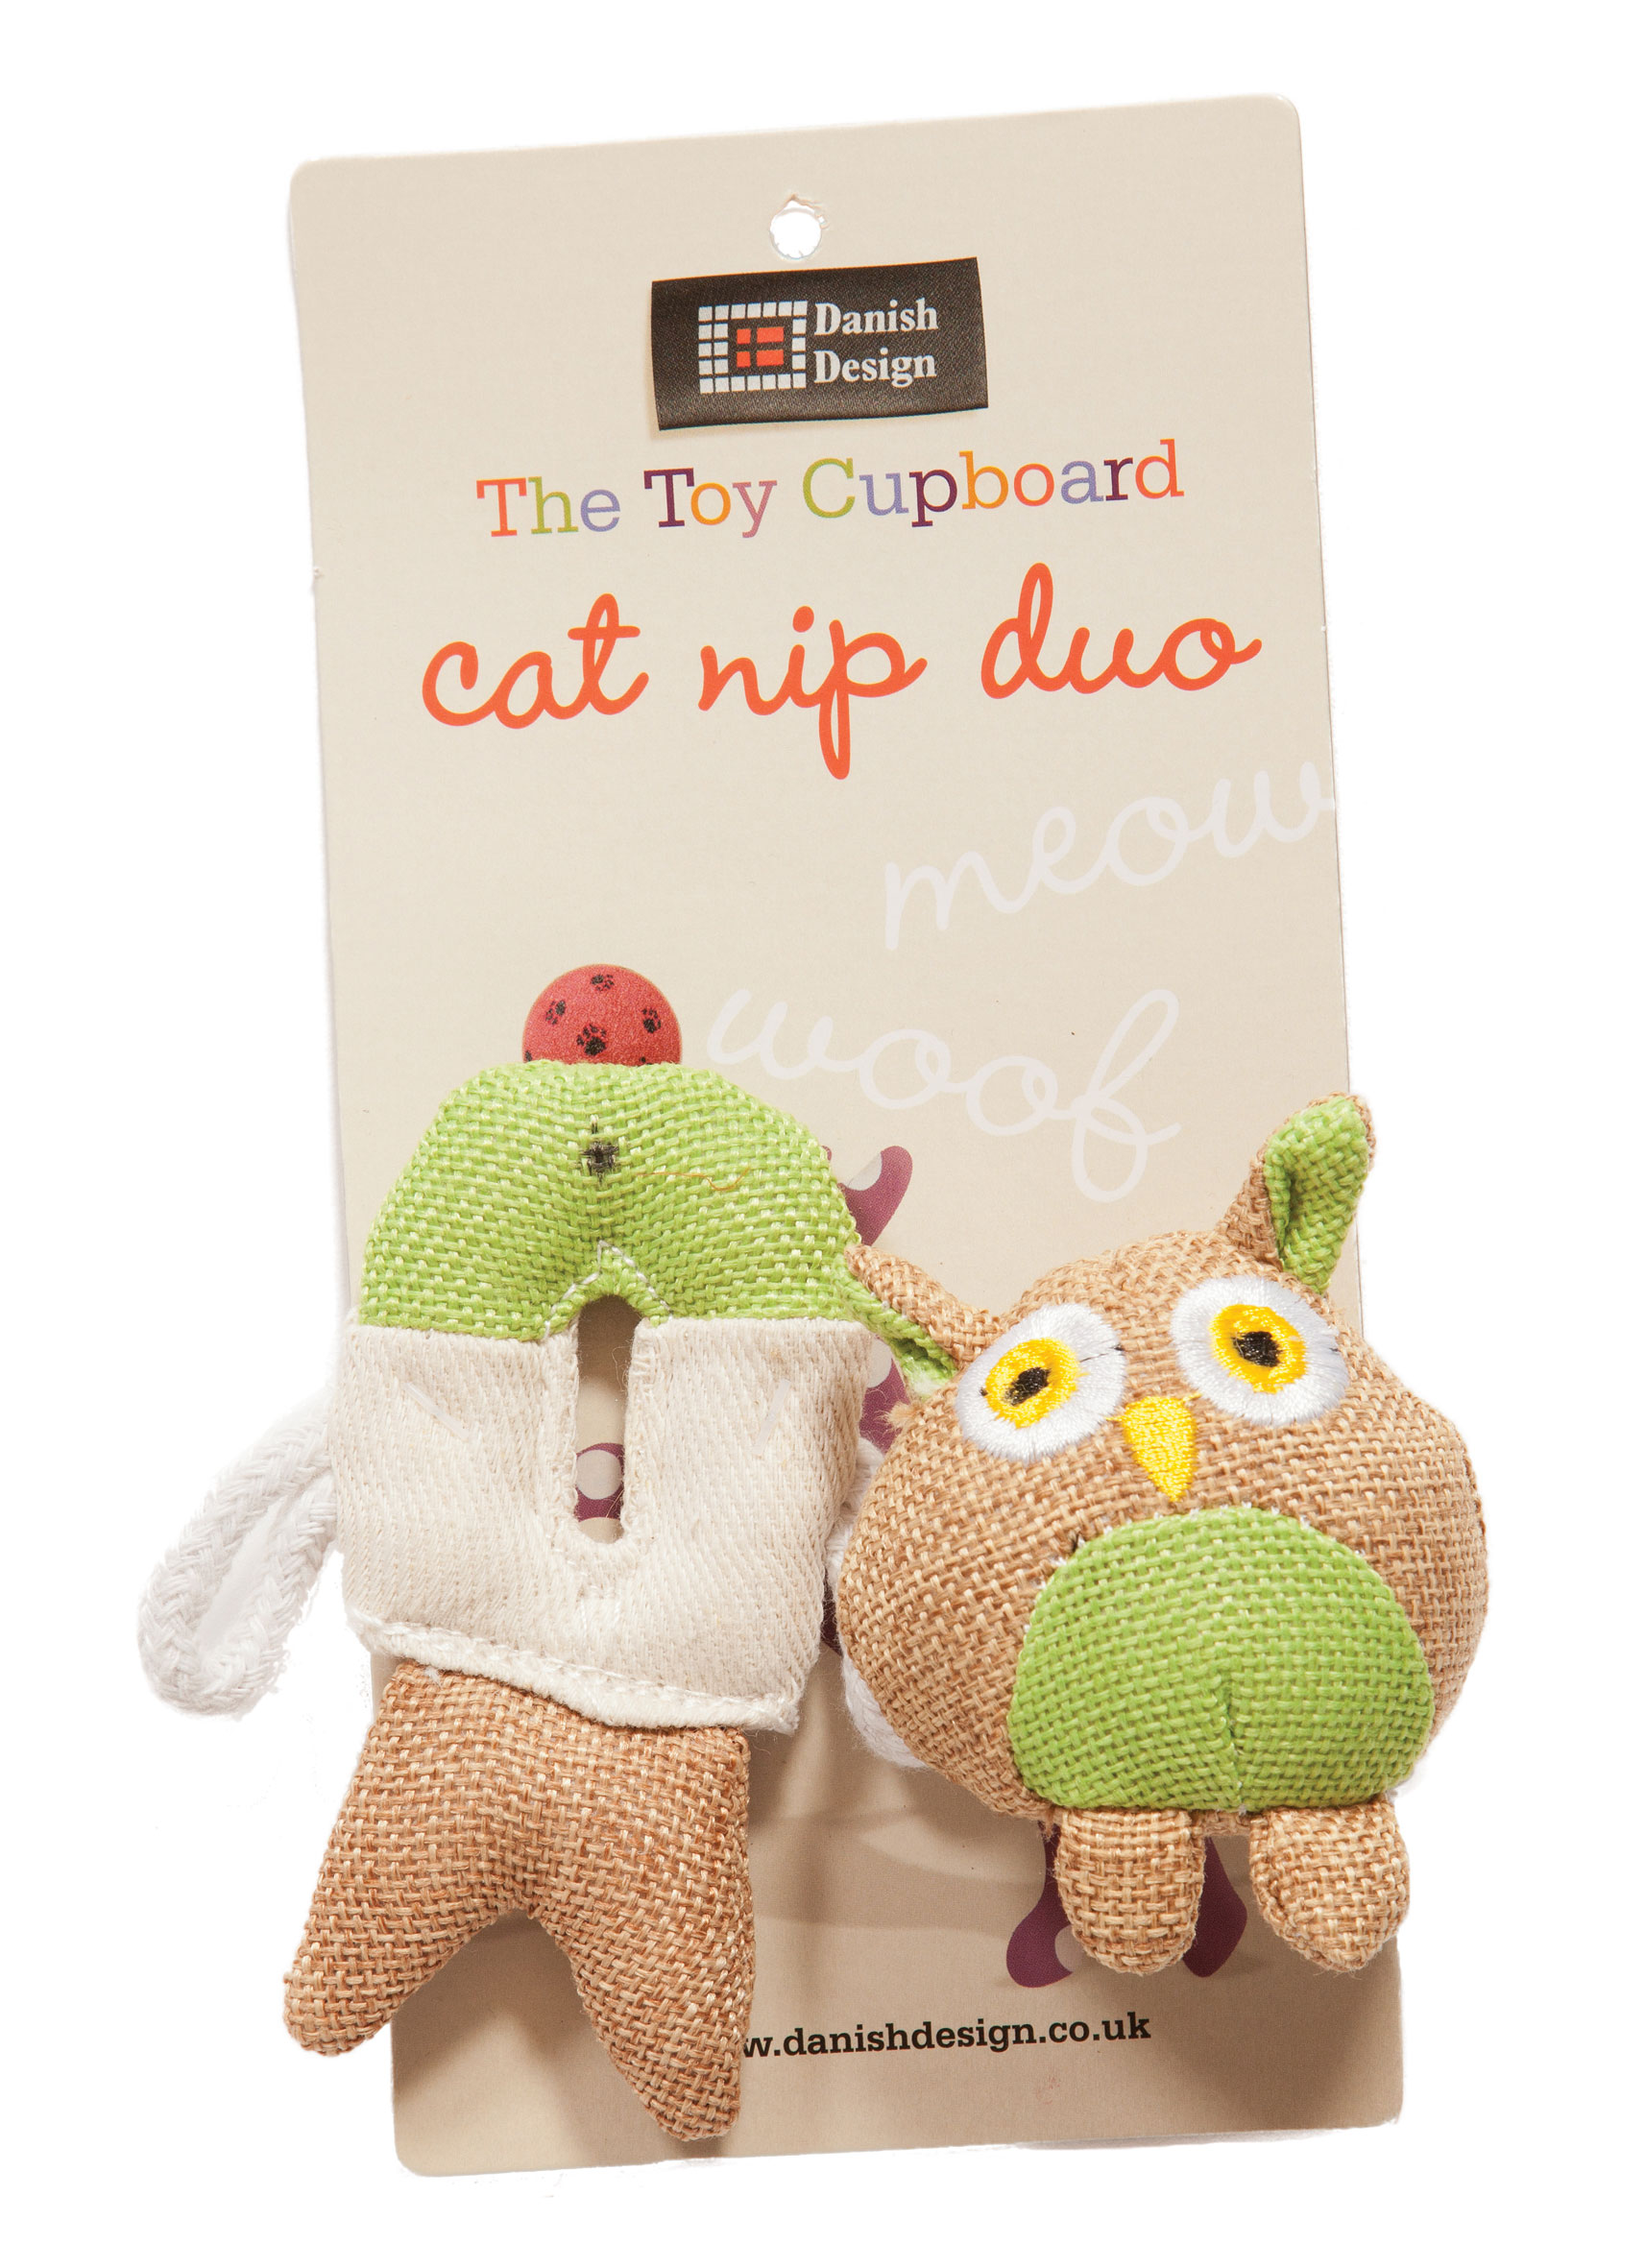 Fido and Fish Catnip Duo Cat Toys by Danish Design